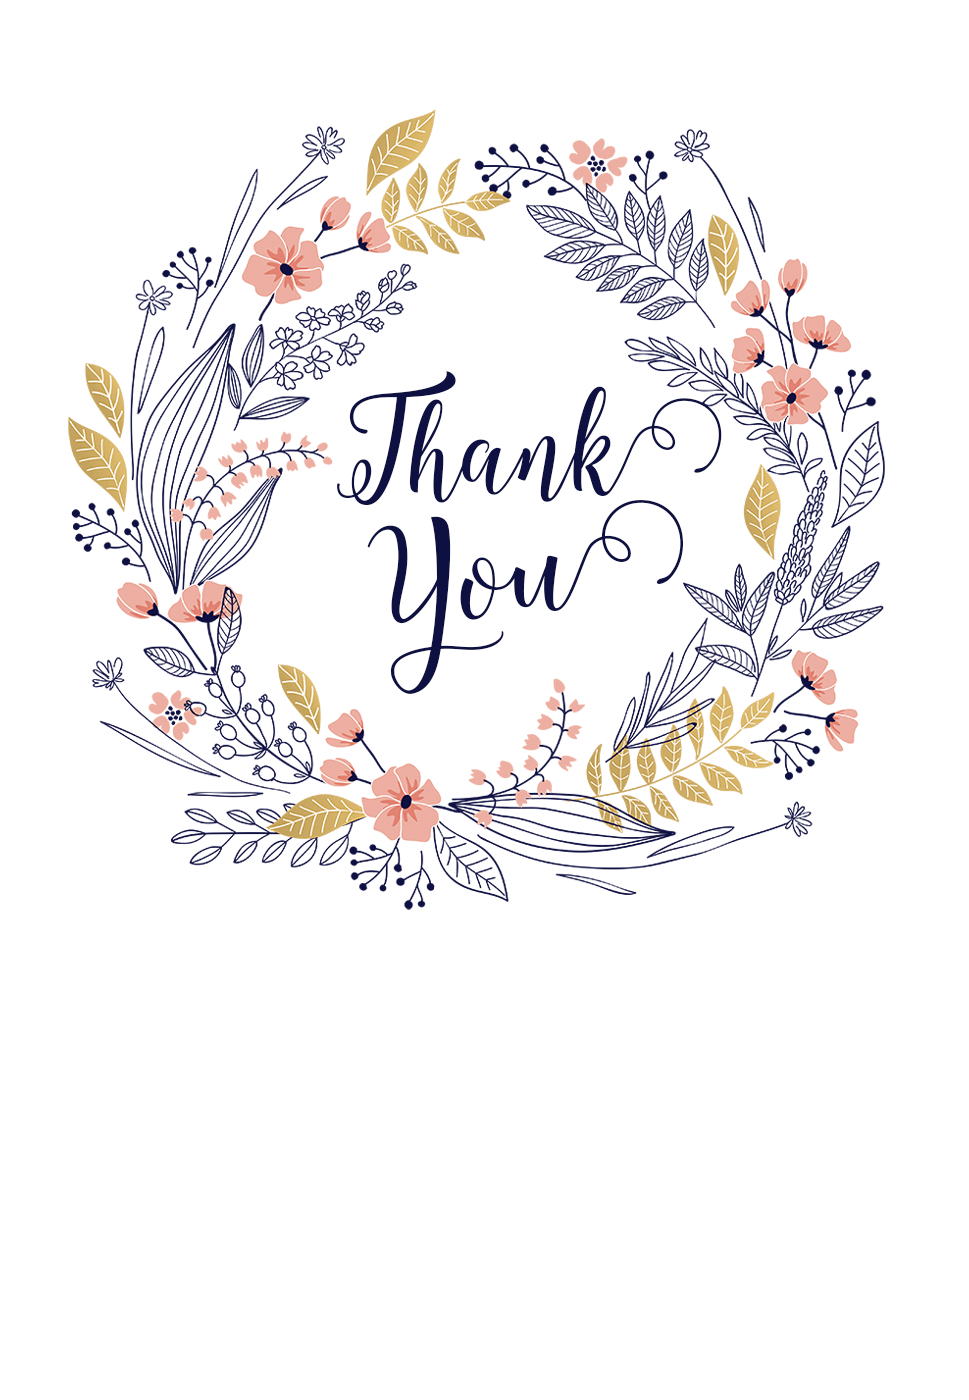 Free Printable Thank You Cards For Business Printable Thank You Cards Business Thank You Cards Free Thank You Cards